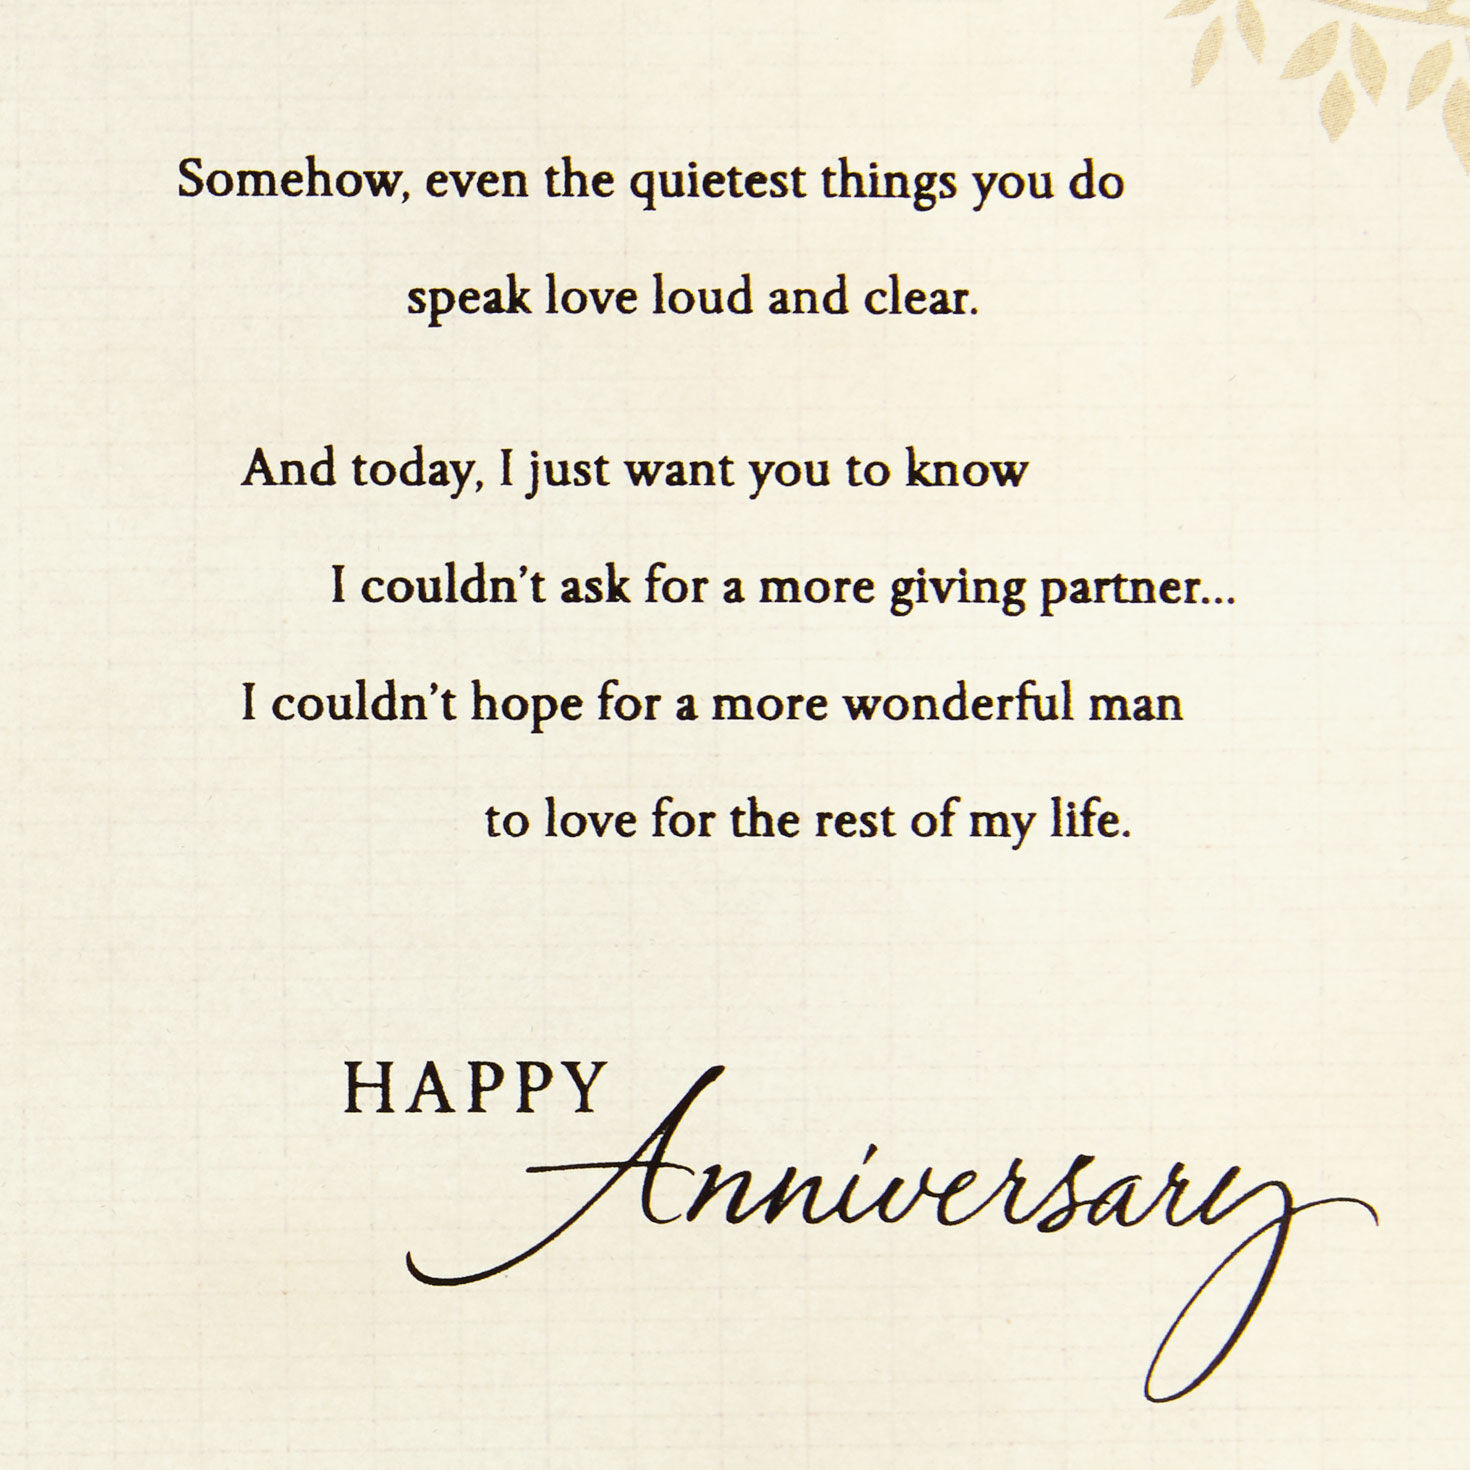 Bargain Prices with Free P/&P Lovely /'On Our First Anniversary/' Card